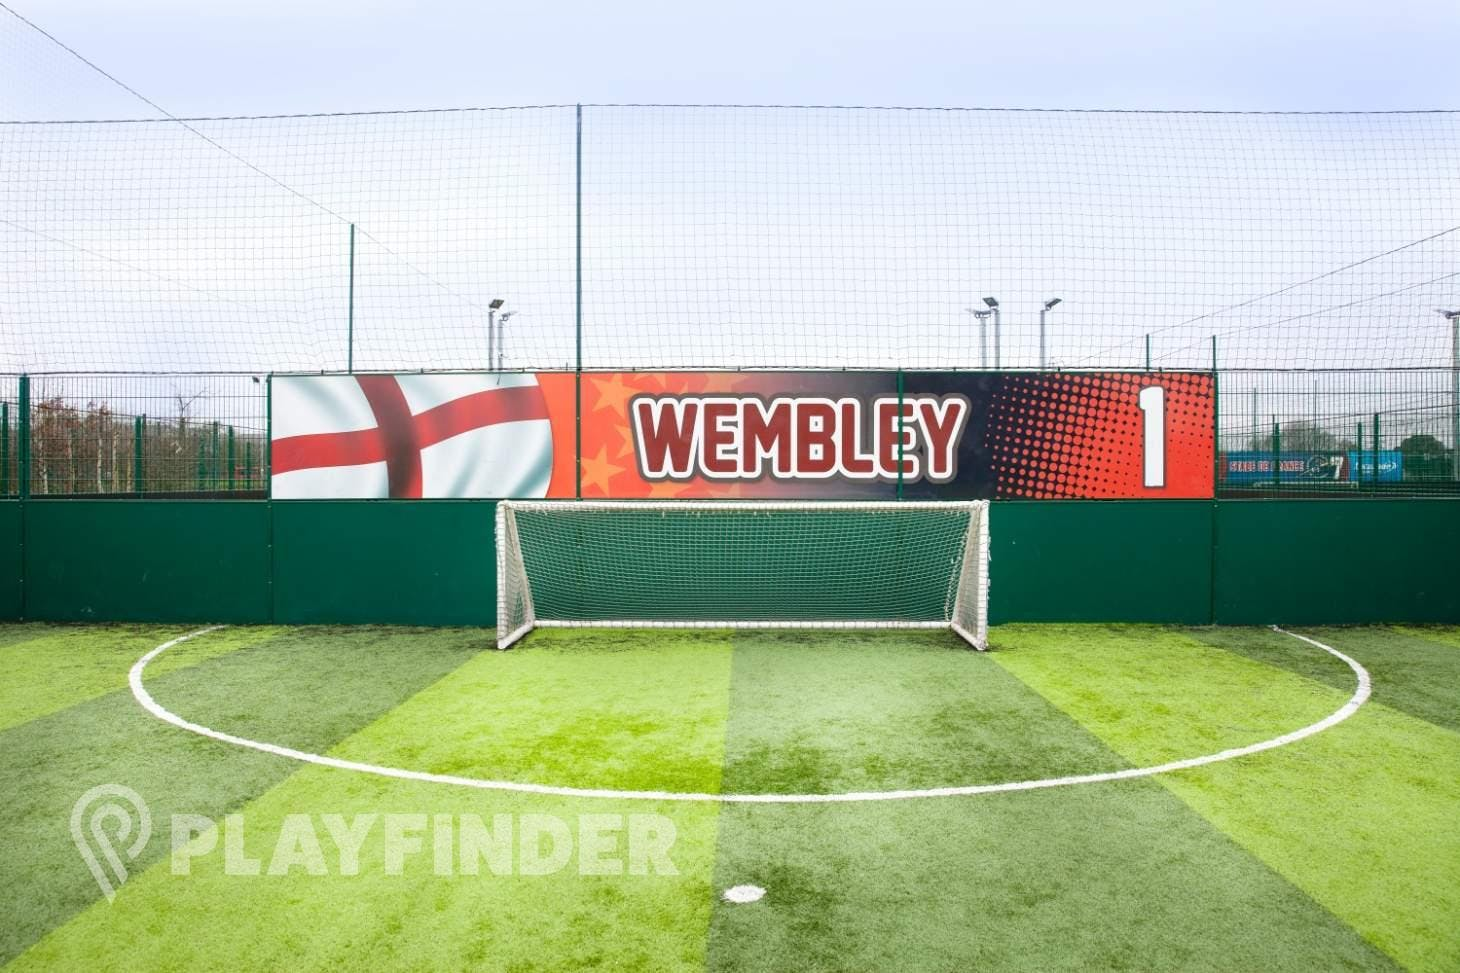 Goals Reading 5 a side | 3G Astroturf football pitch